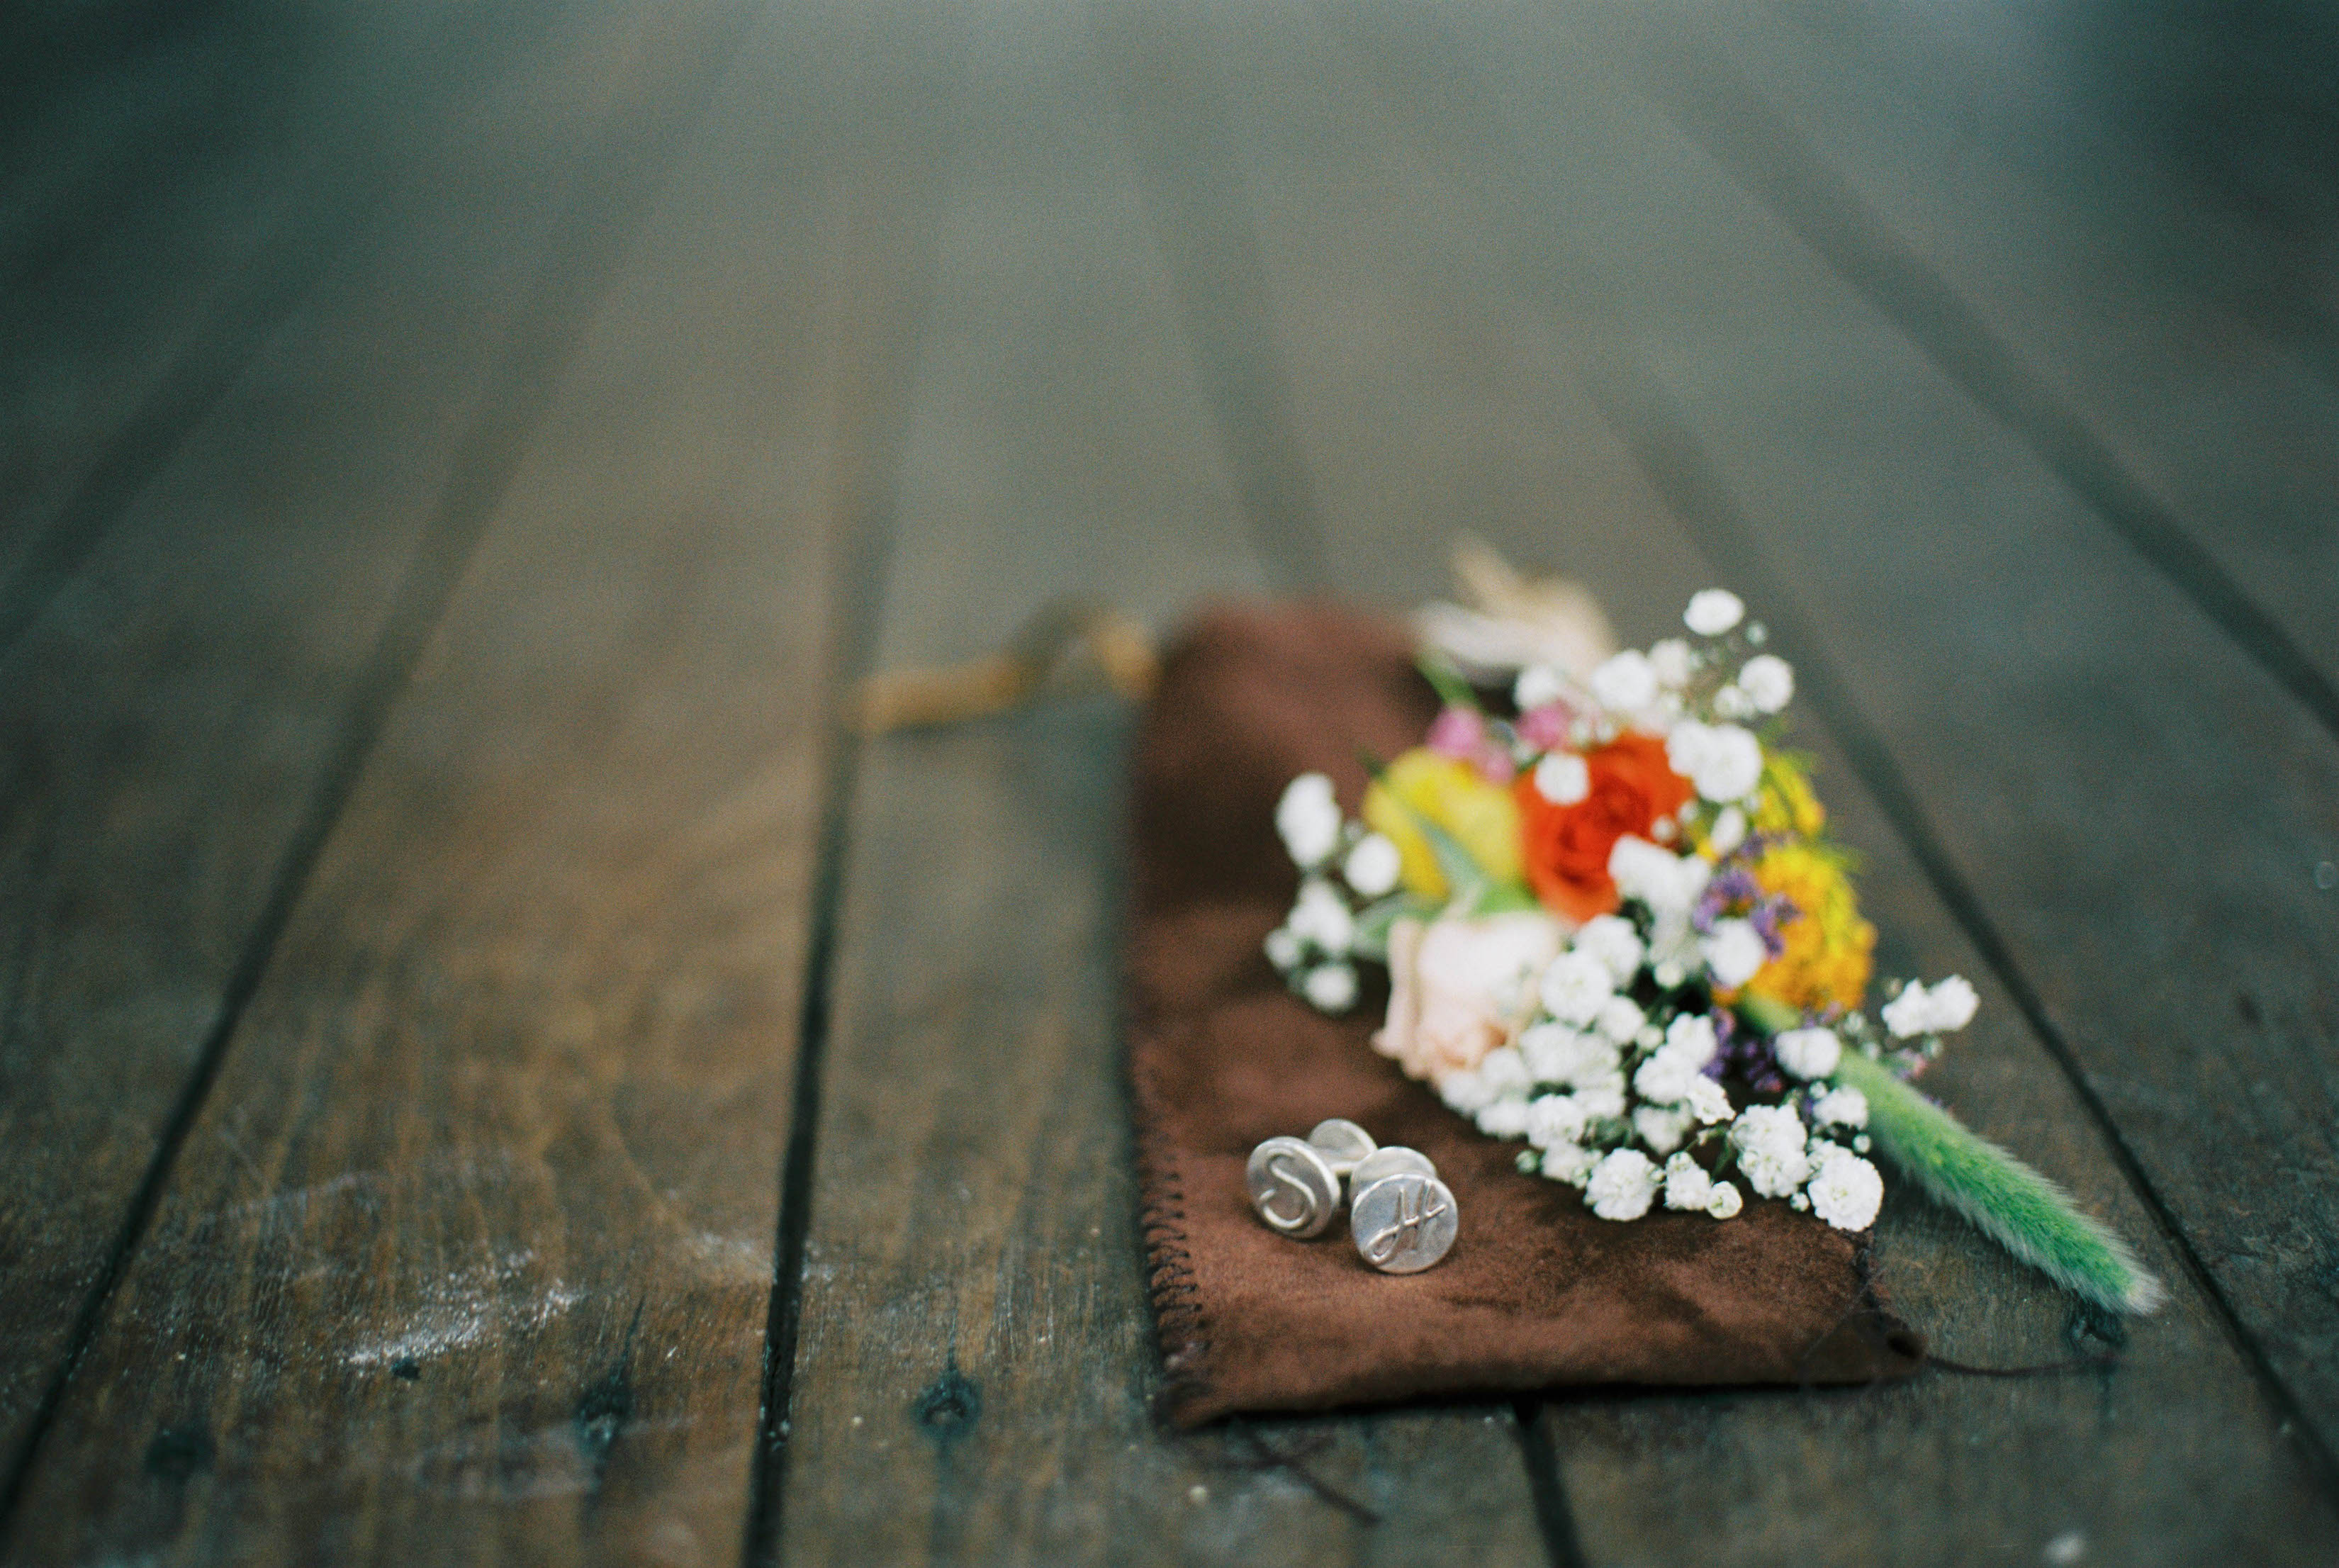 A photo of the groom's handmade cuff links taken on 35mm film